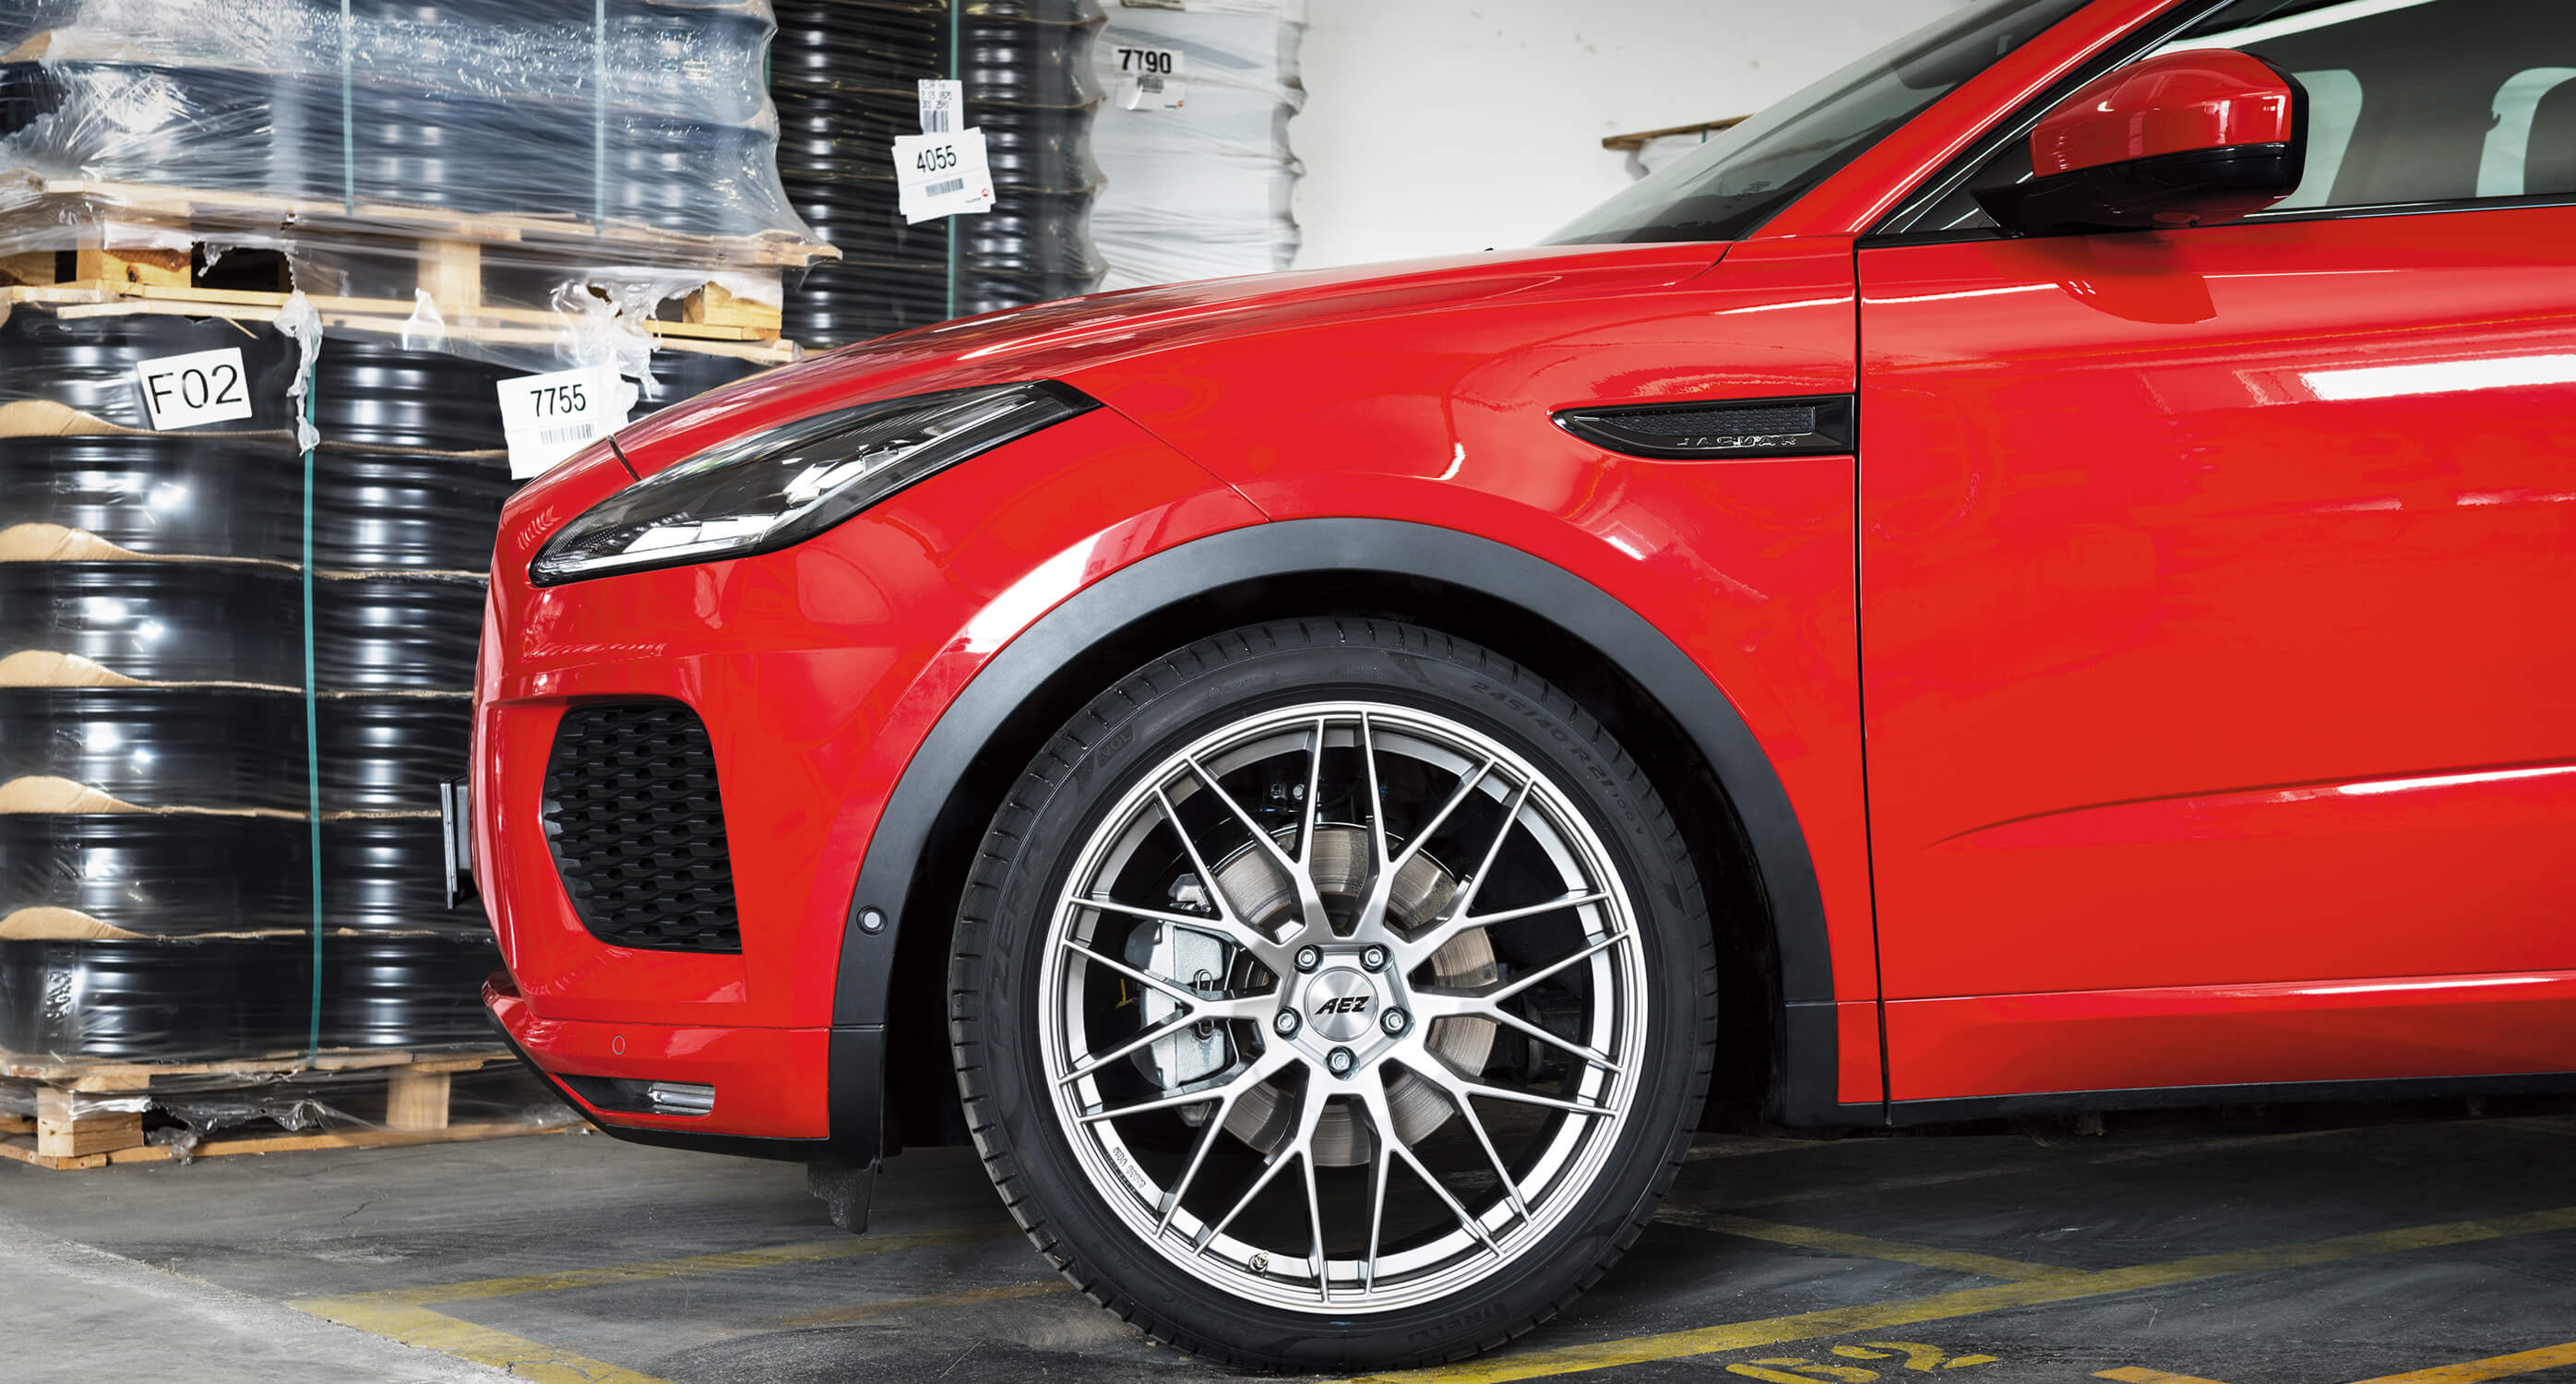 The new Jaguar E-Pace on AEZ Crest - Wheel Detail Shot